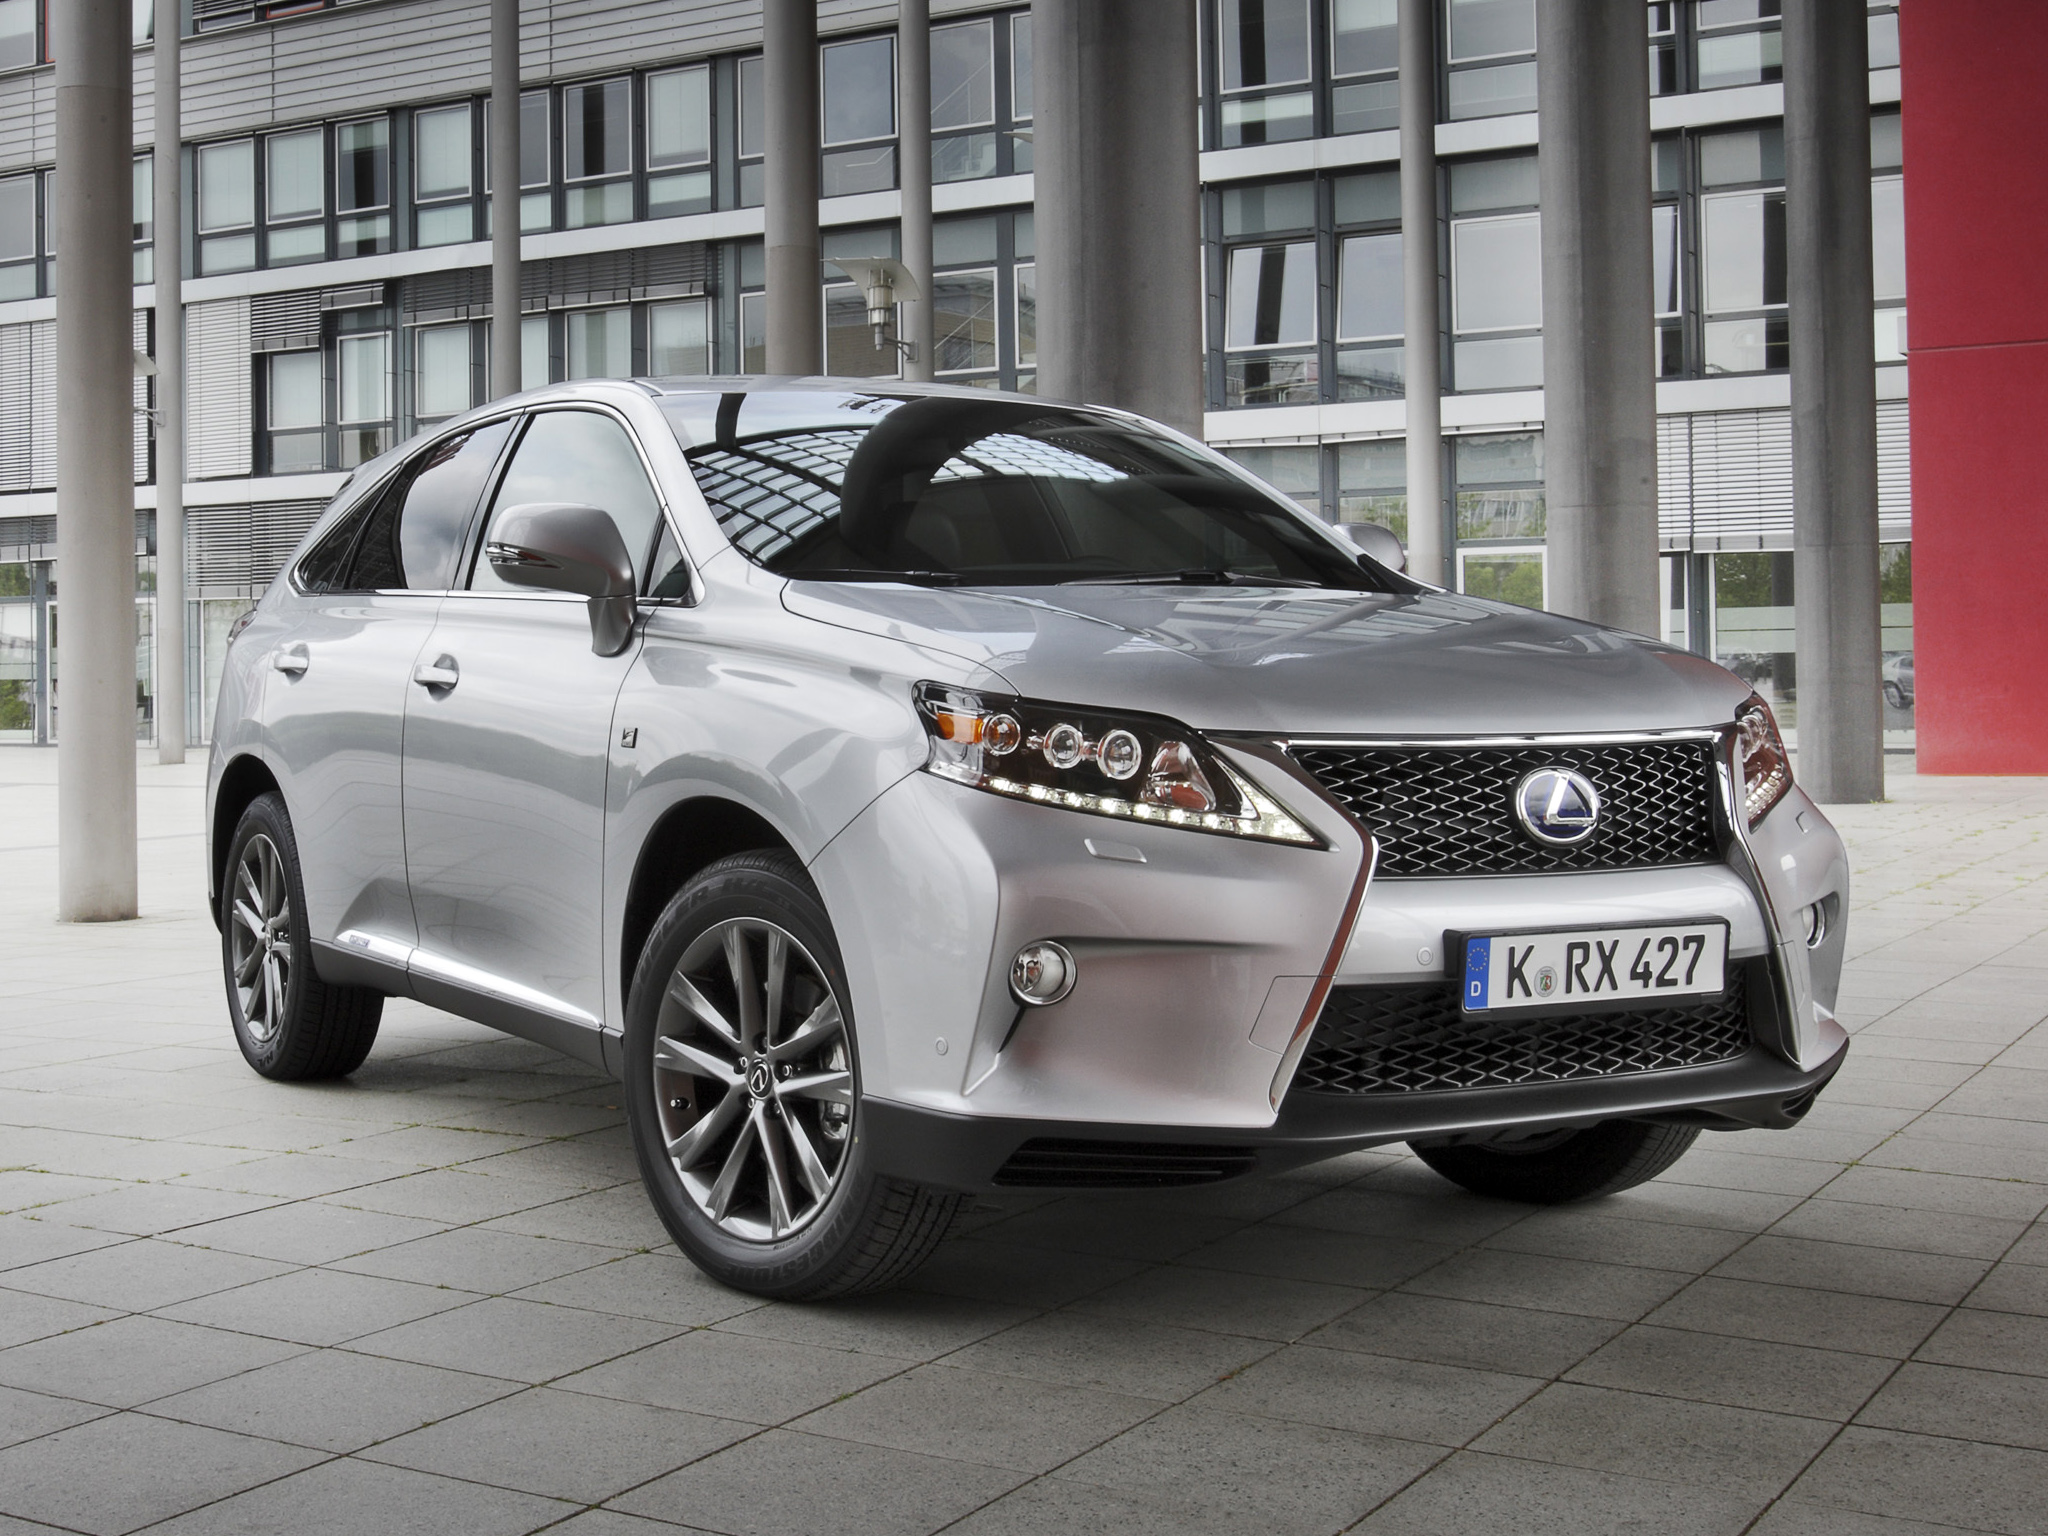 2019 Lexus RX 450h F Sport photo - 5